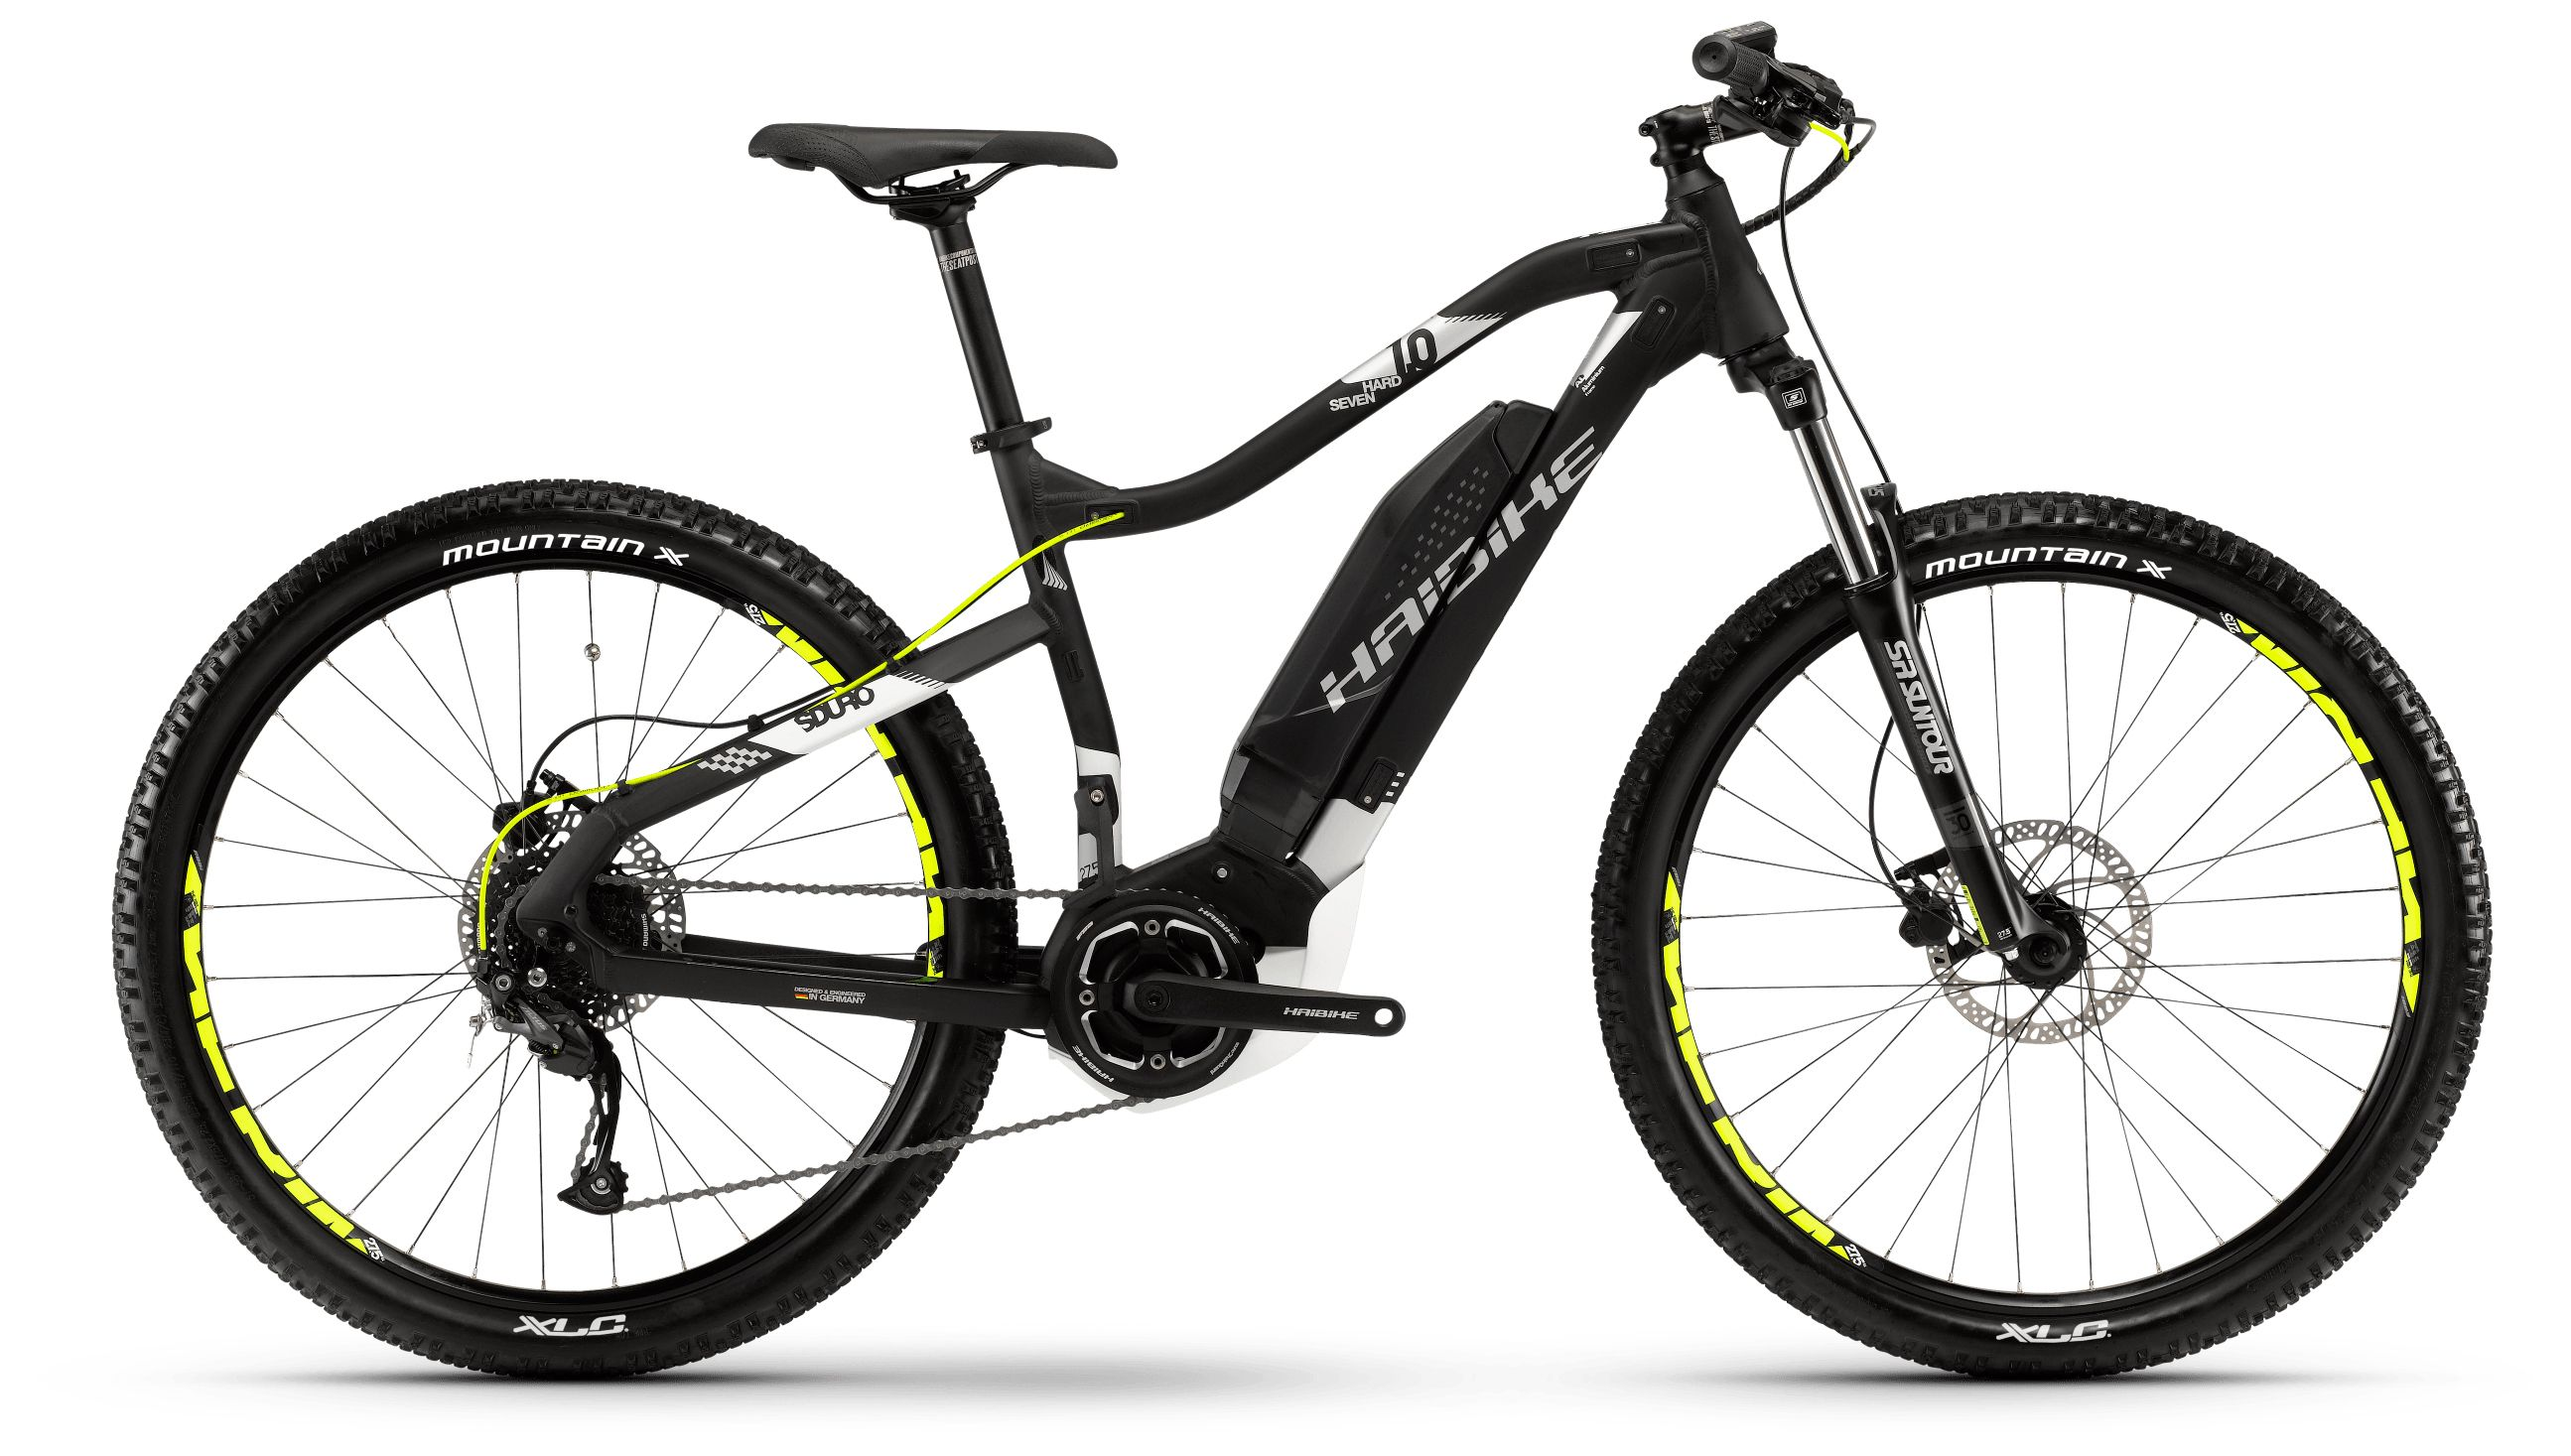 Велосипед Haibike Sduro HardSeven 1.0 400Wh 9s Altus 2018 велосипед haibike sduro trekking 4 0 he 400wh 10s deore 2018